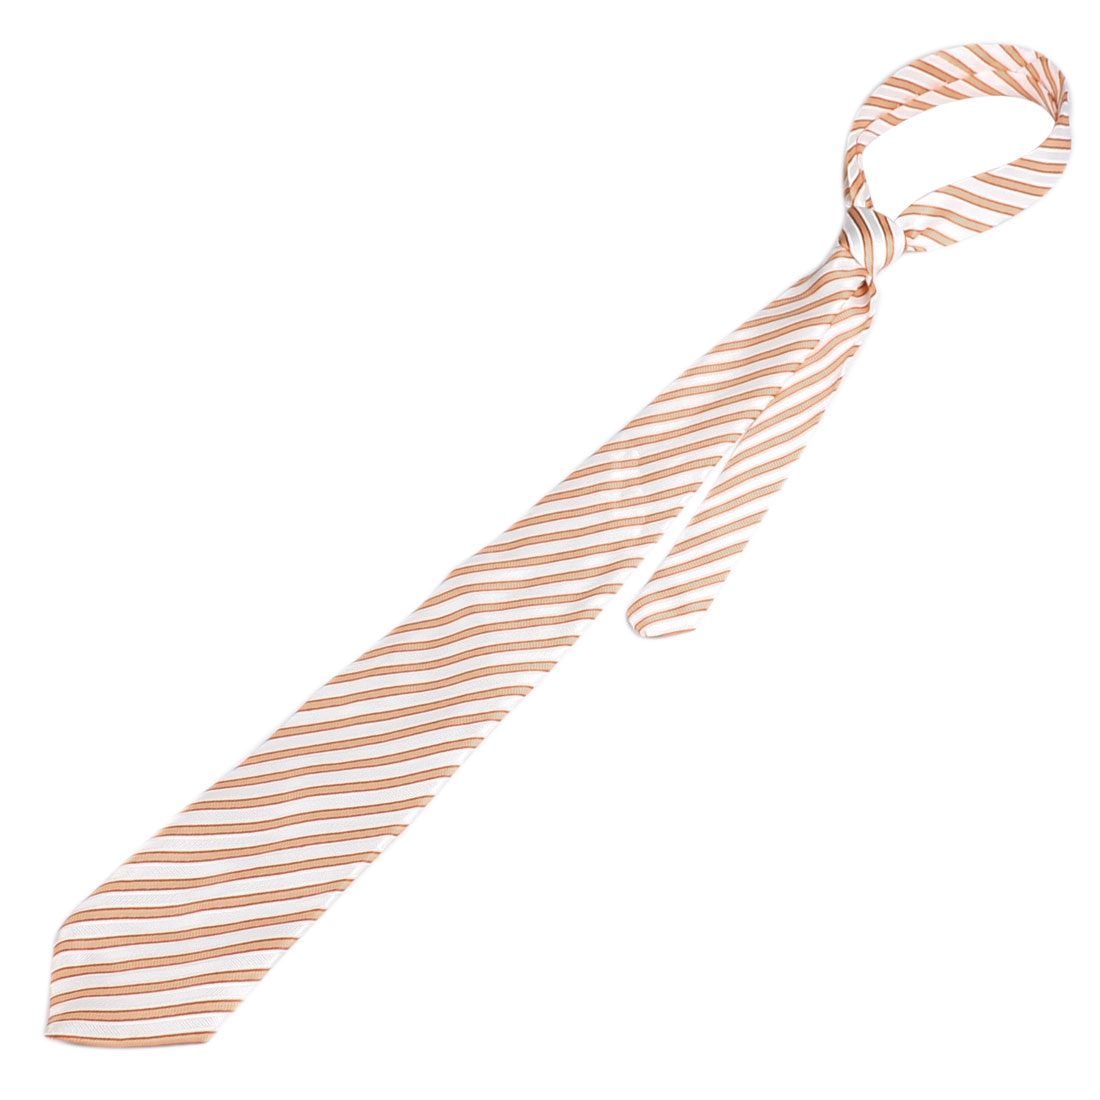 10cm Width White Dark Orange Stripes Pattern Neck Tie for Man